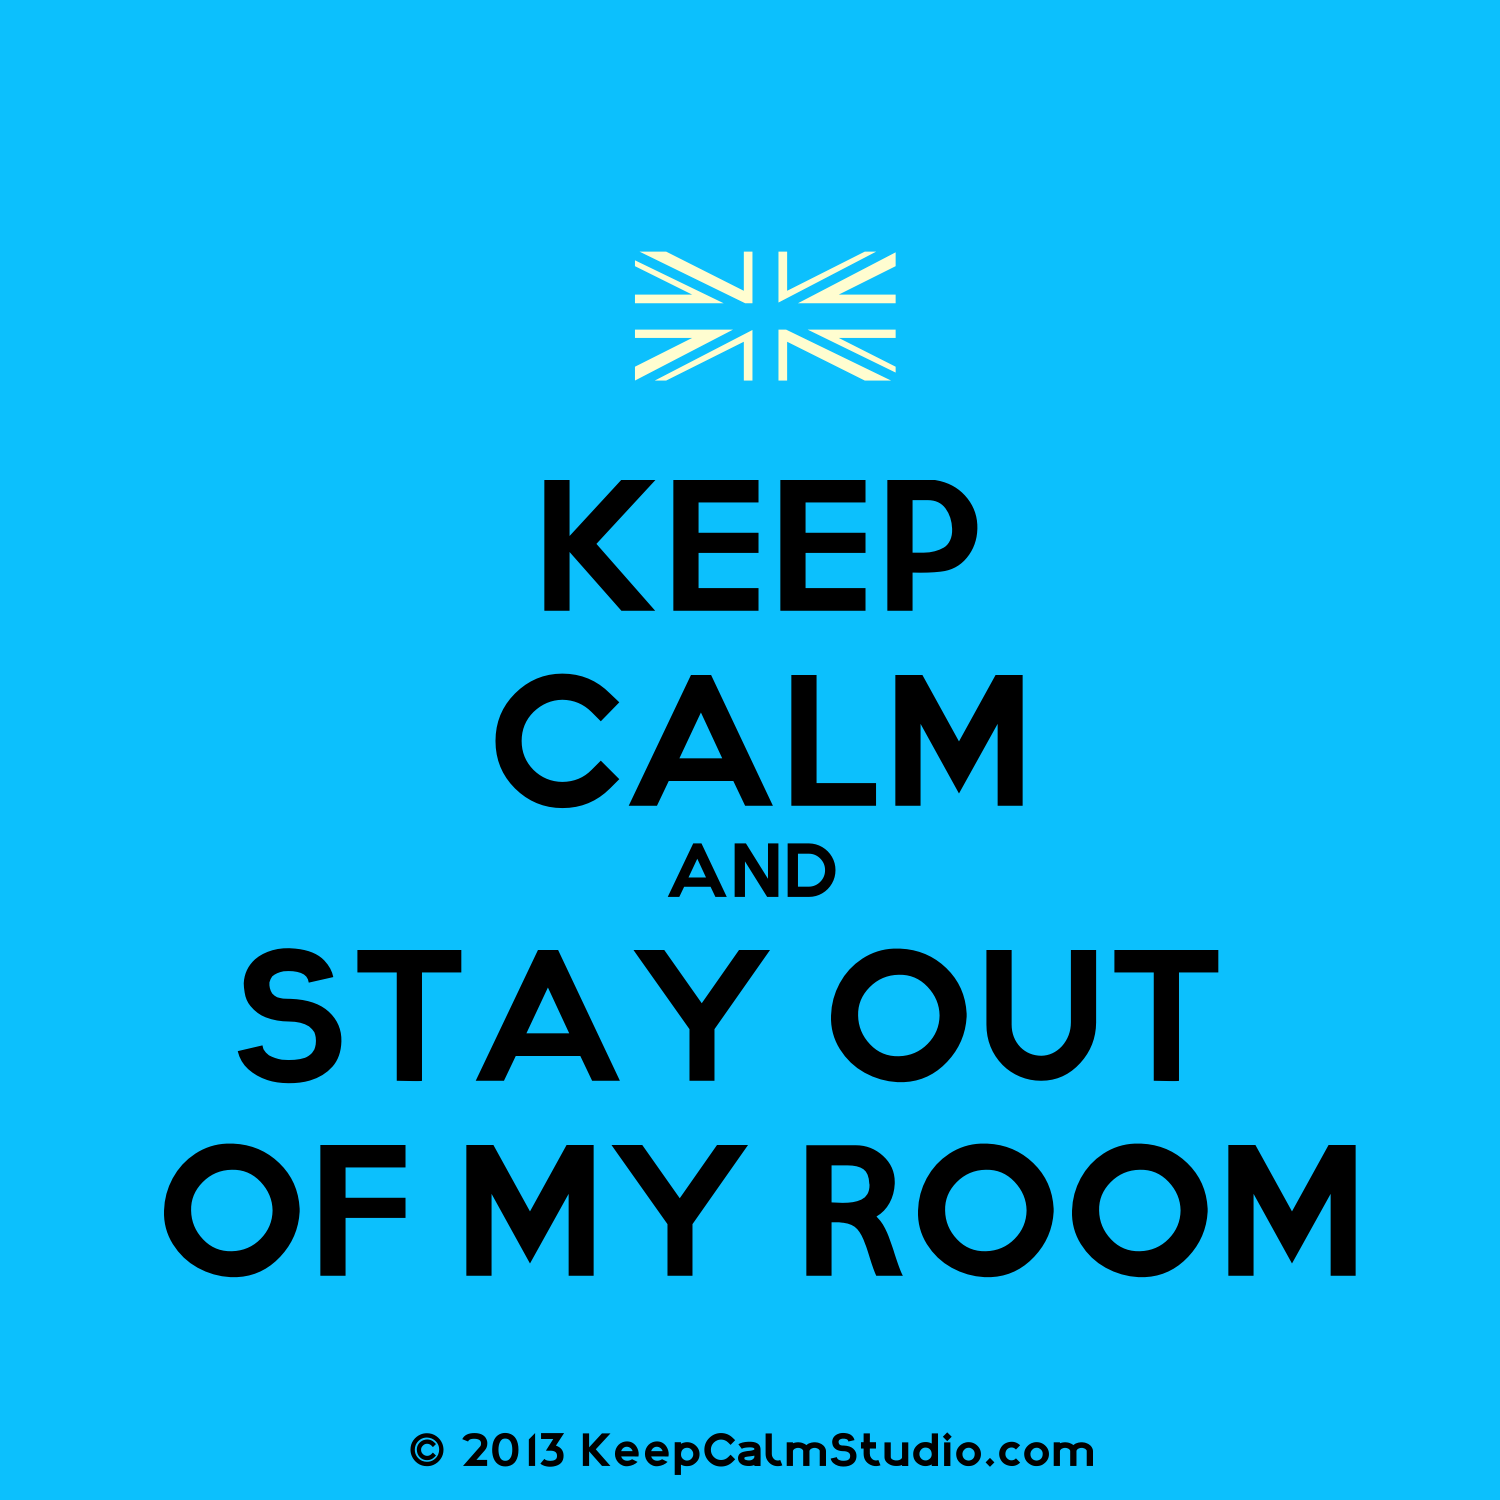 Funny Stay Out Of My Room Signs Funny Goal